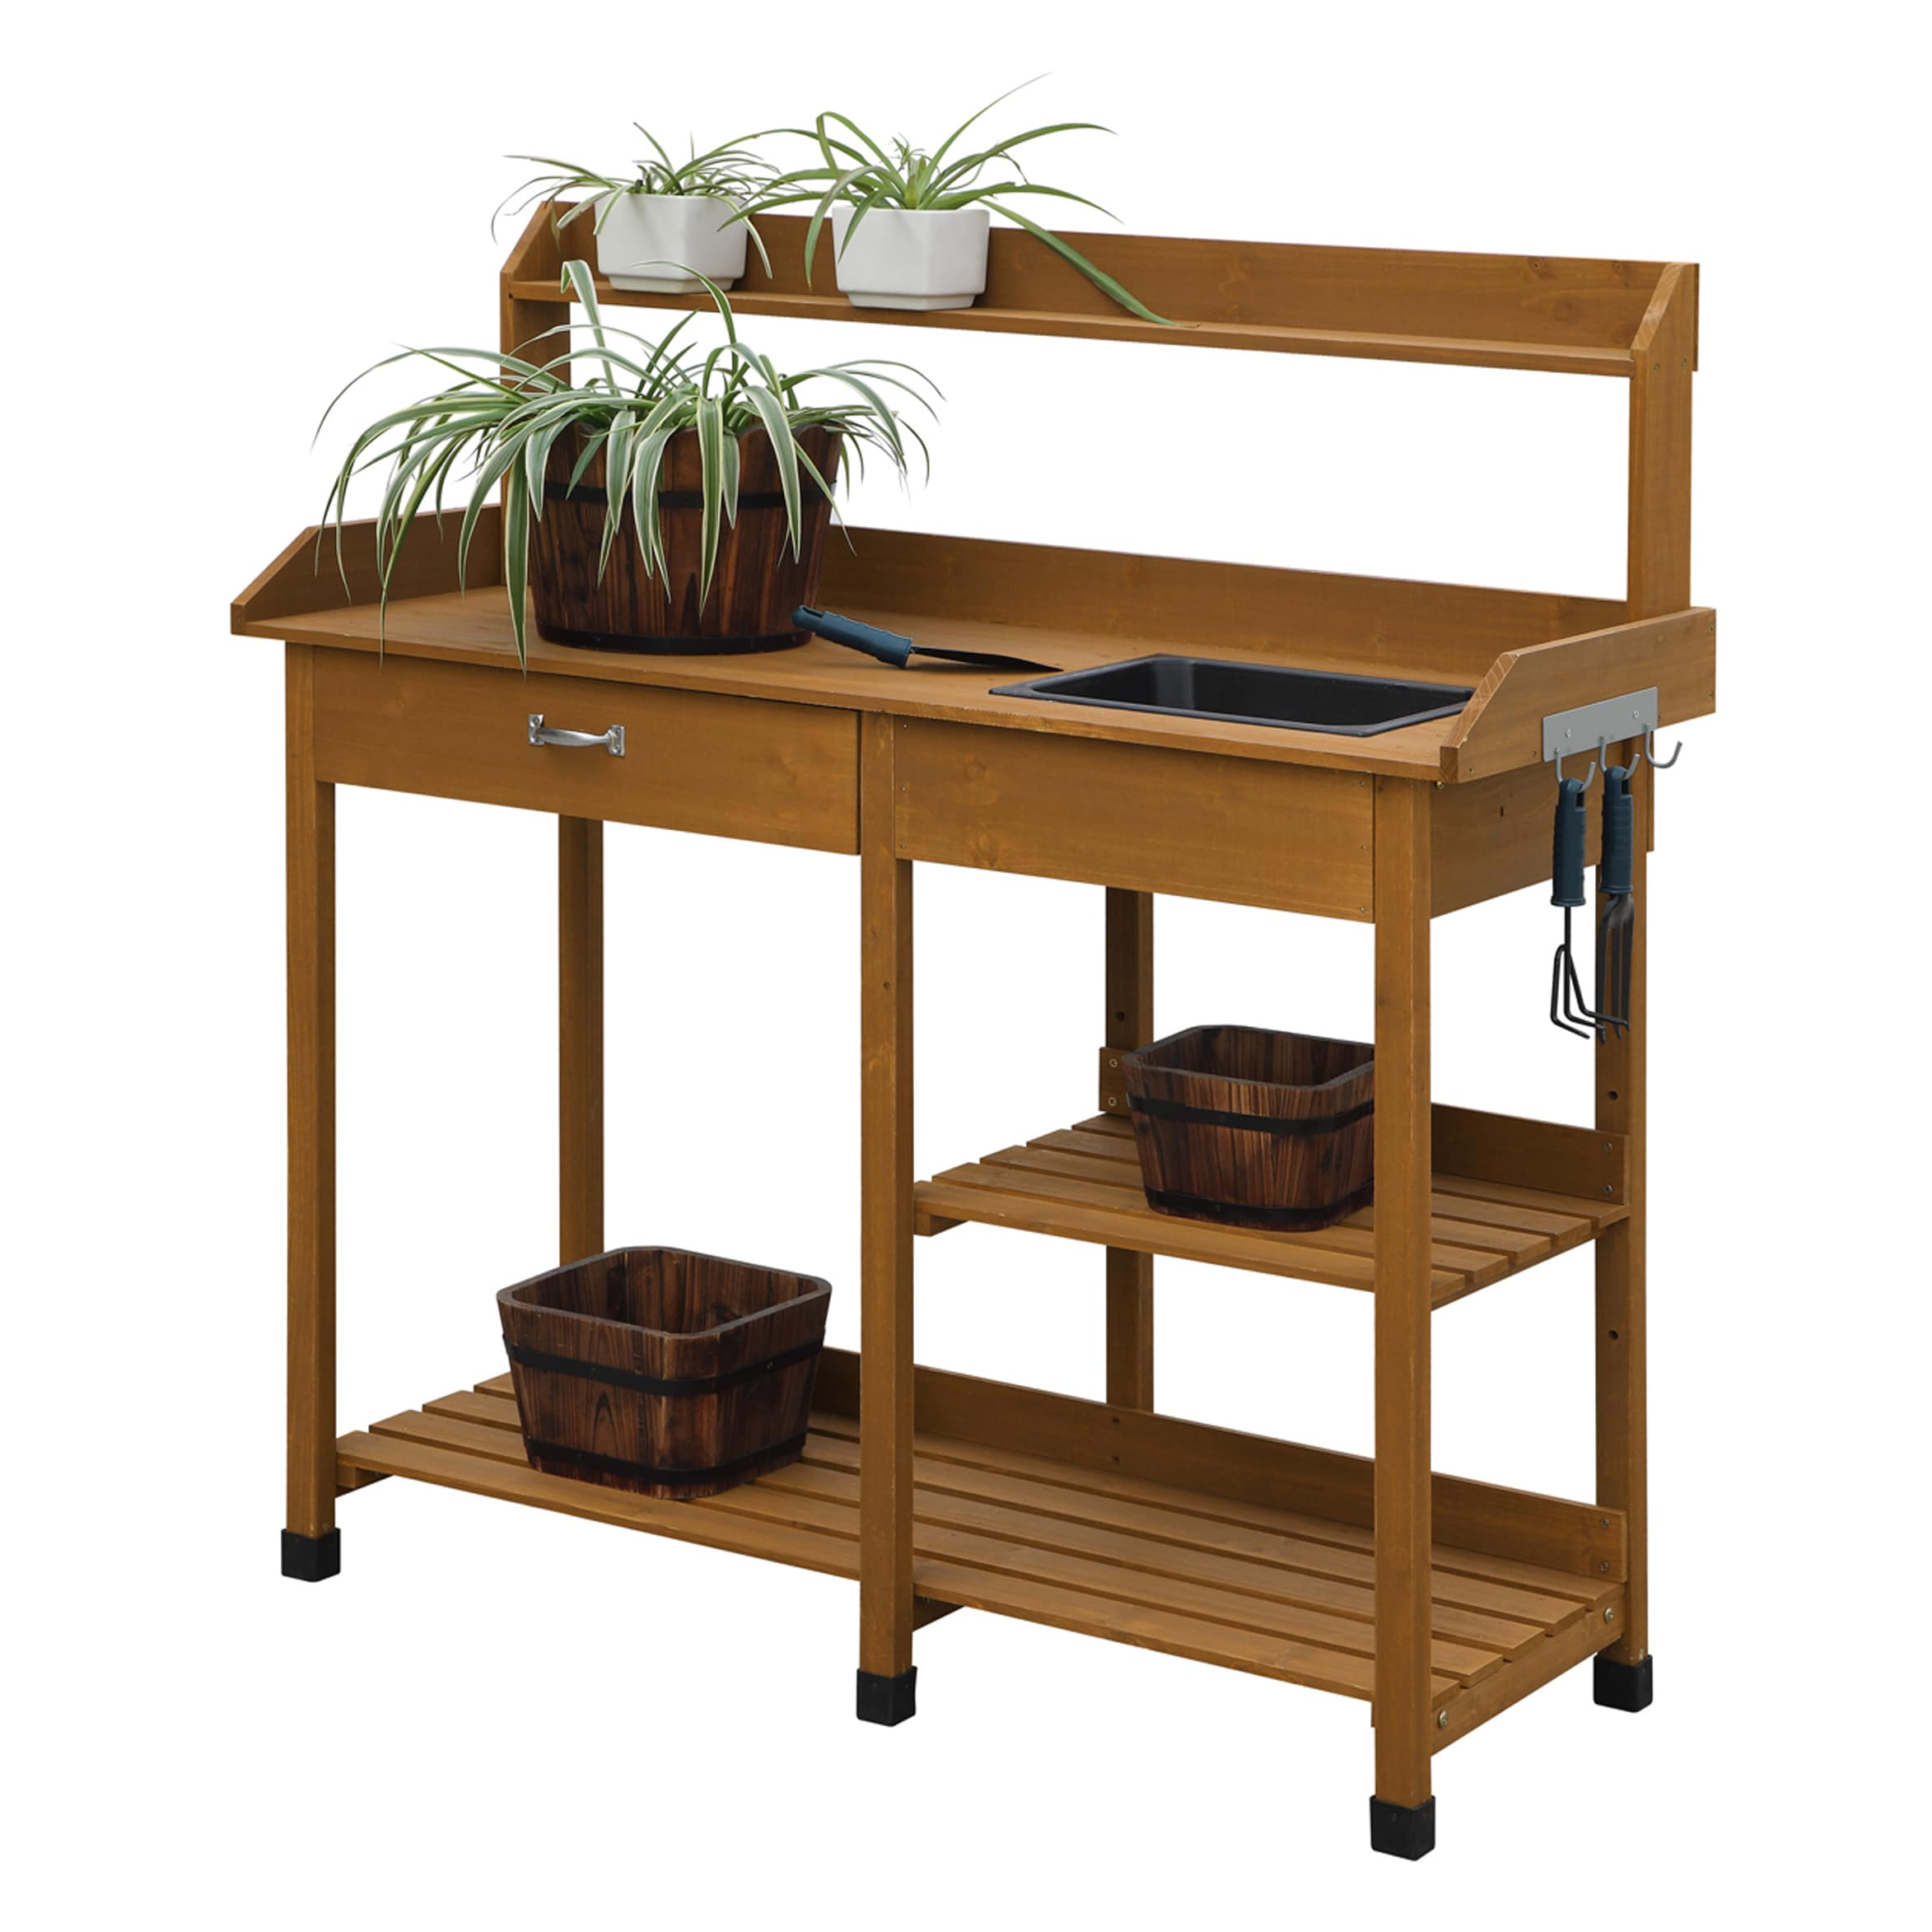 Fabulous Convenience Concepts Deluxe Potting Bench Ibusinesslaw Wood Chair Design Ideas Ibusinesslaworg